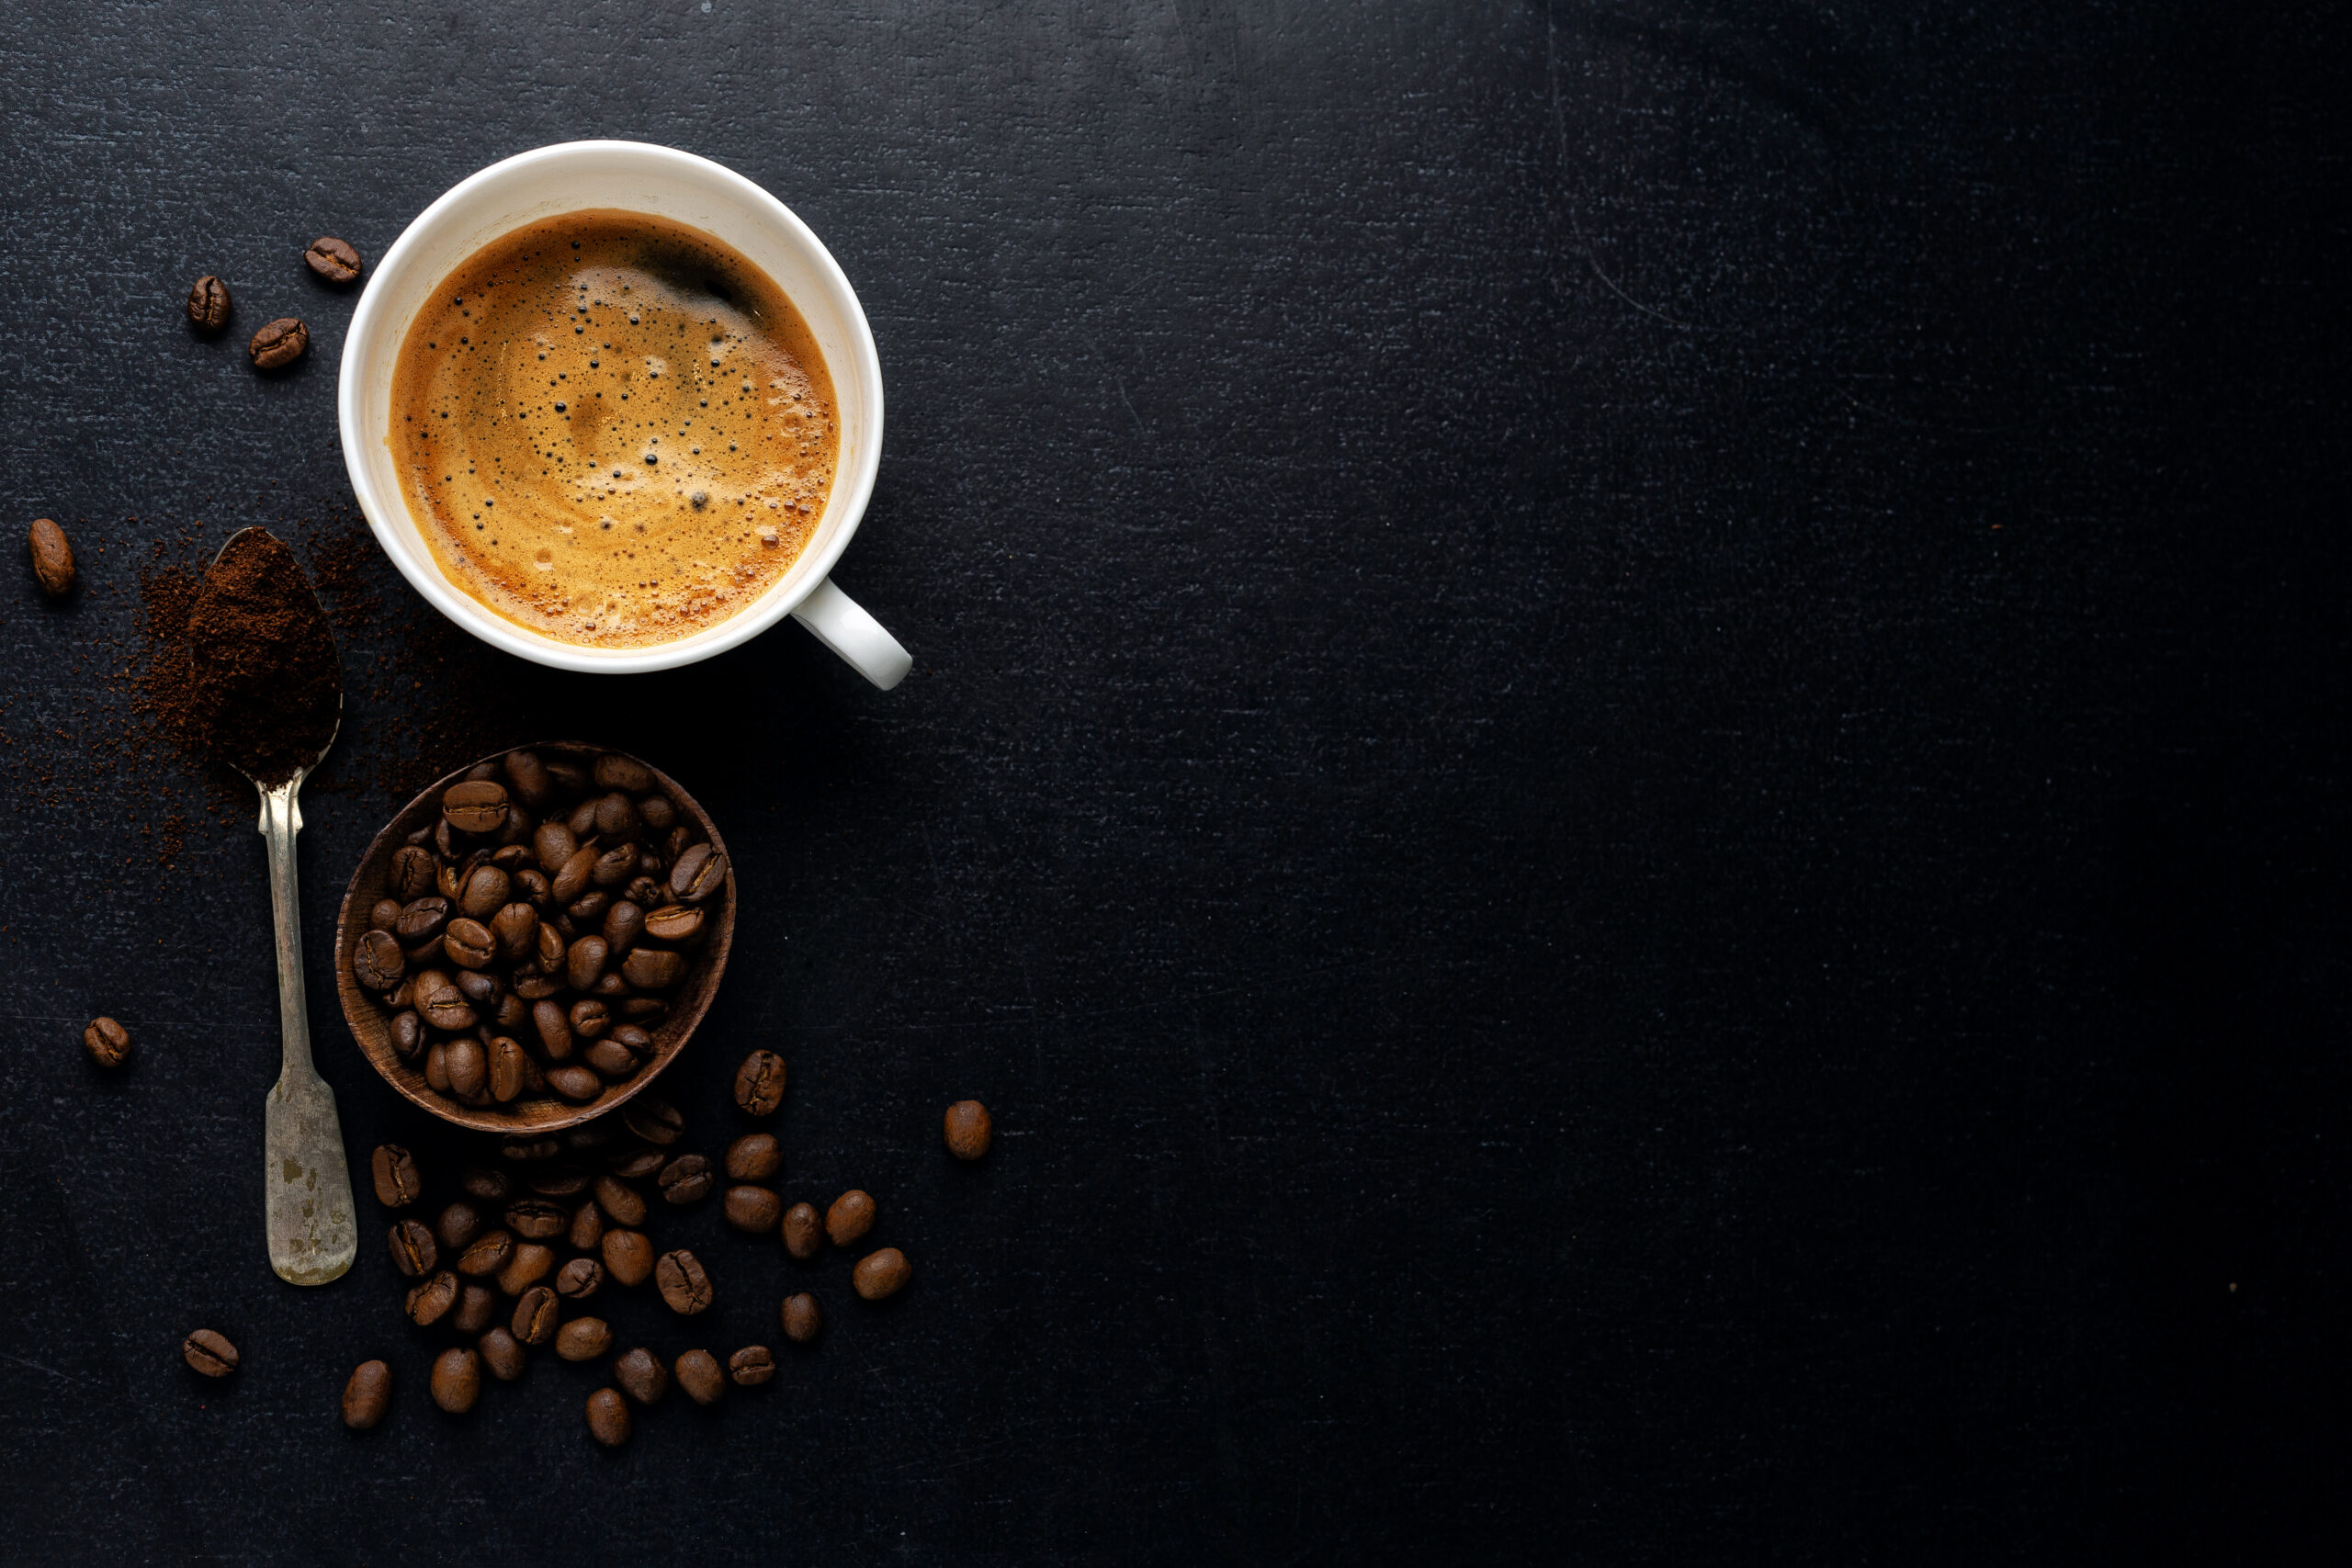 Avoid caffeine late in the day to prevent sleeping issues.